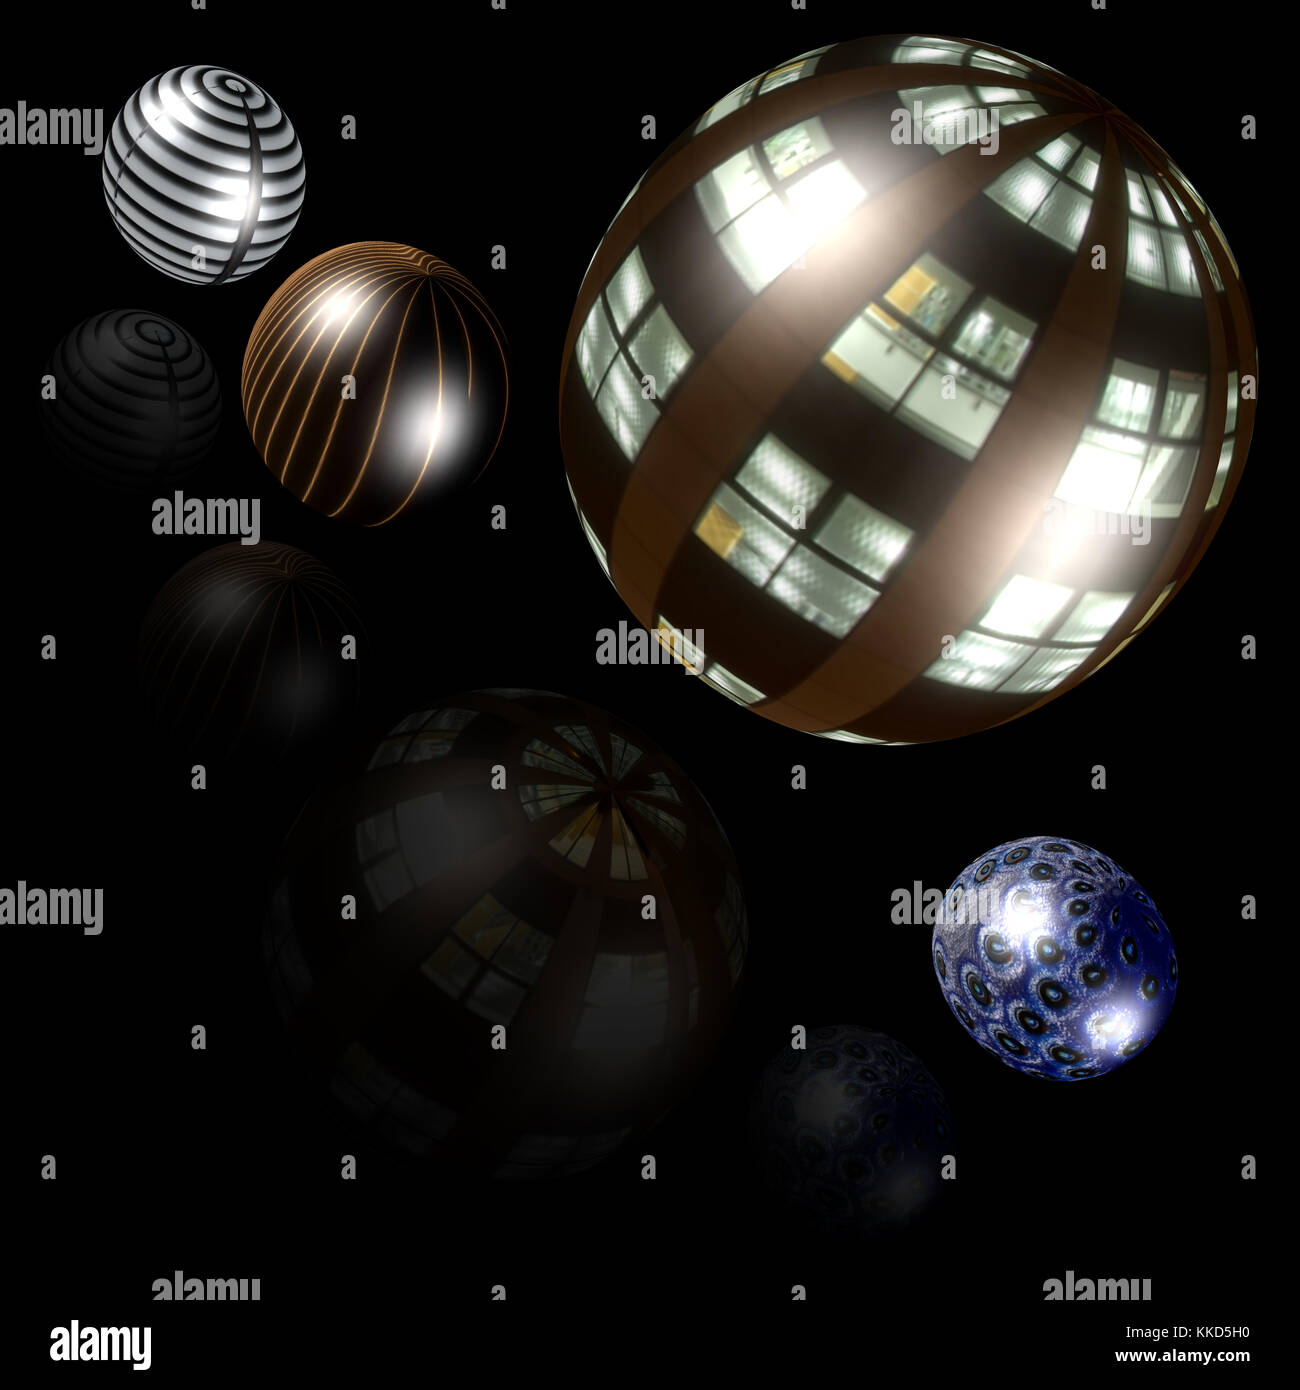 Parallel planets - Windows opening ! - Stock Image